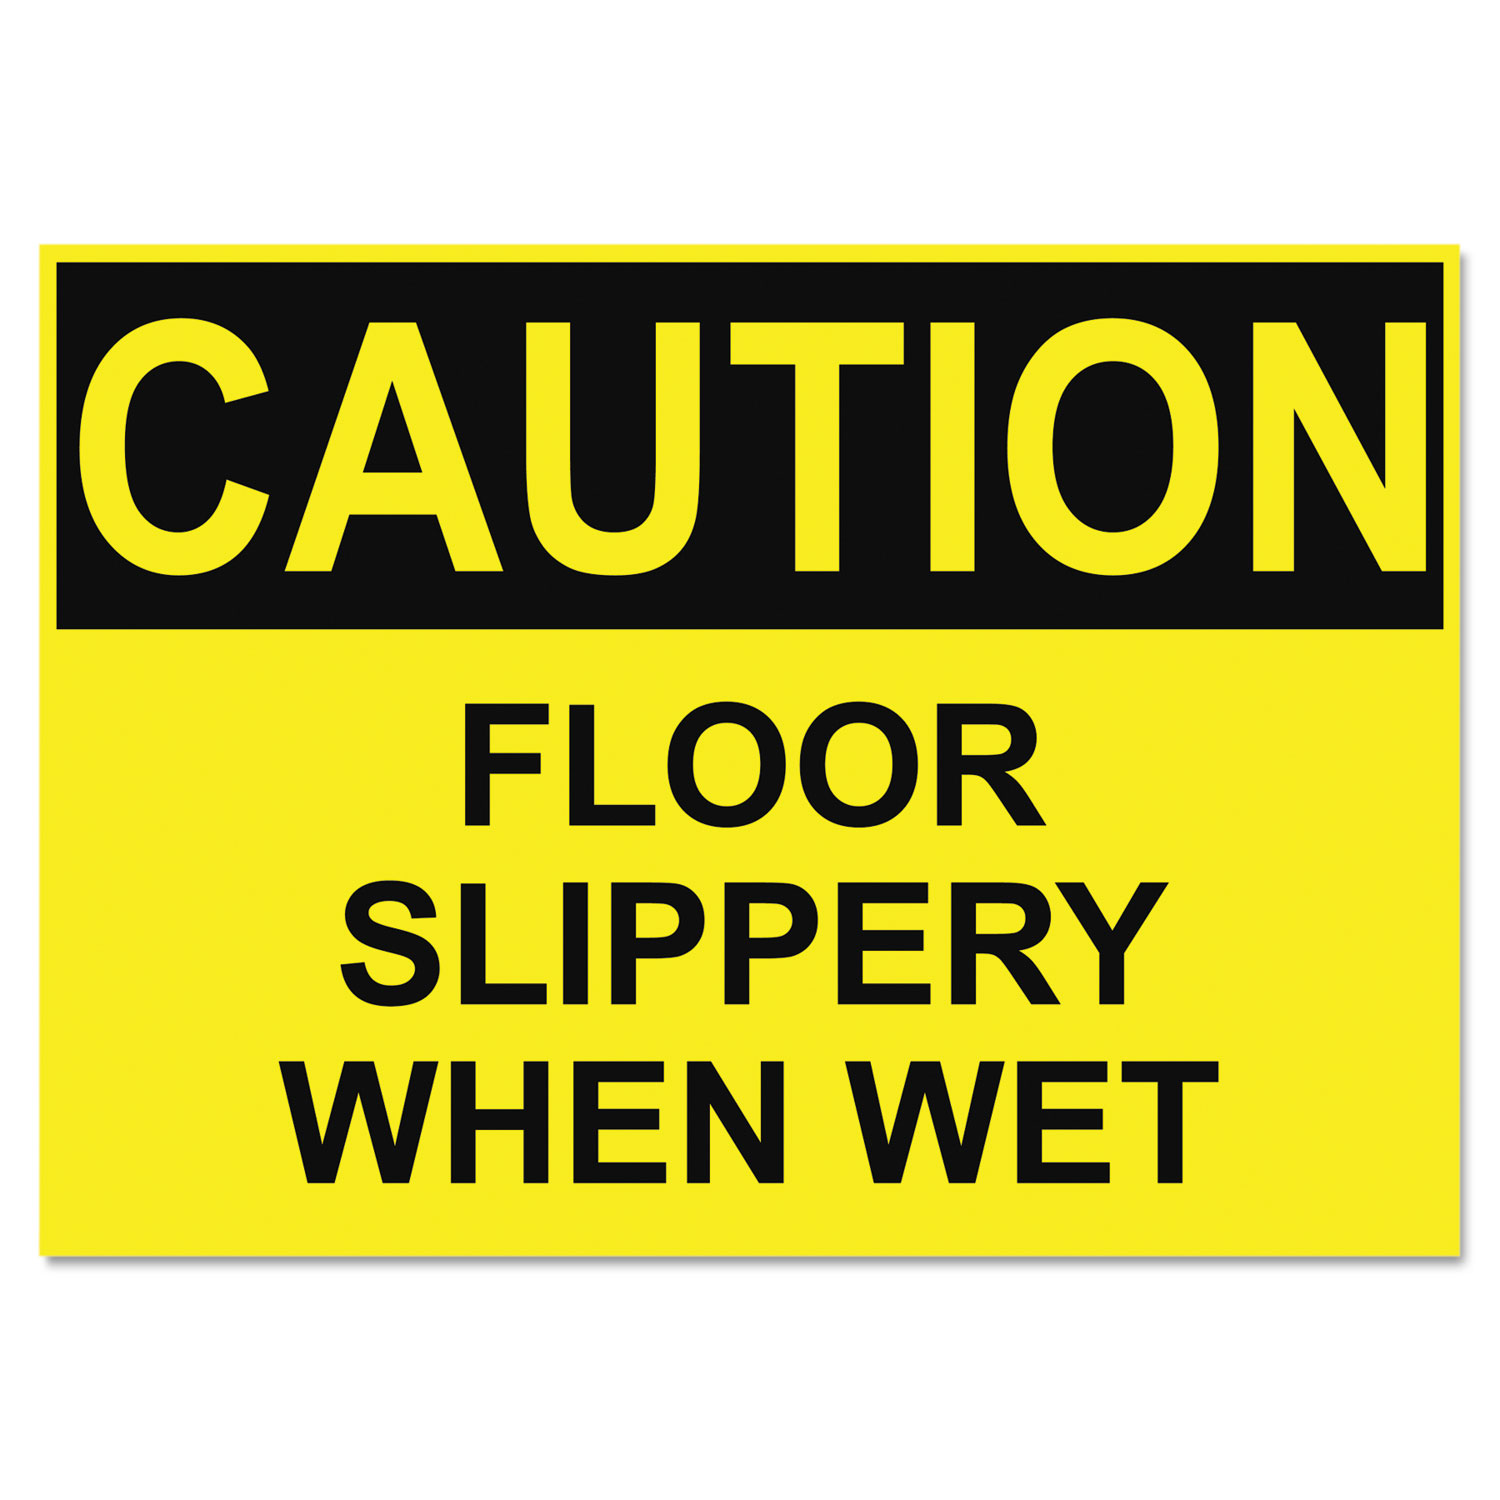 Osha Safety Signs Caution Slippery When Wet Yellow Black